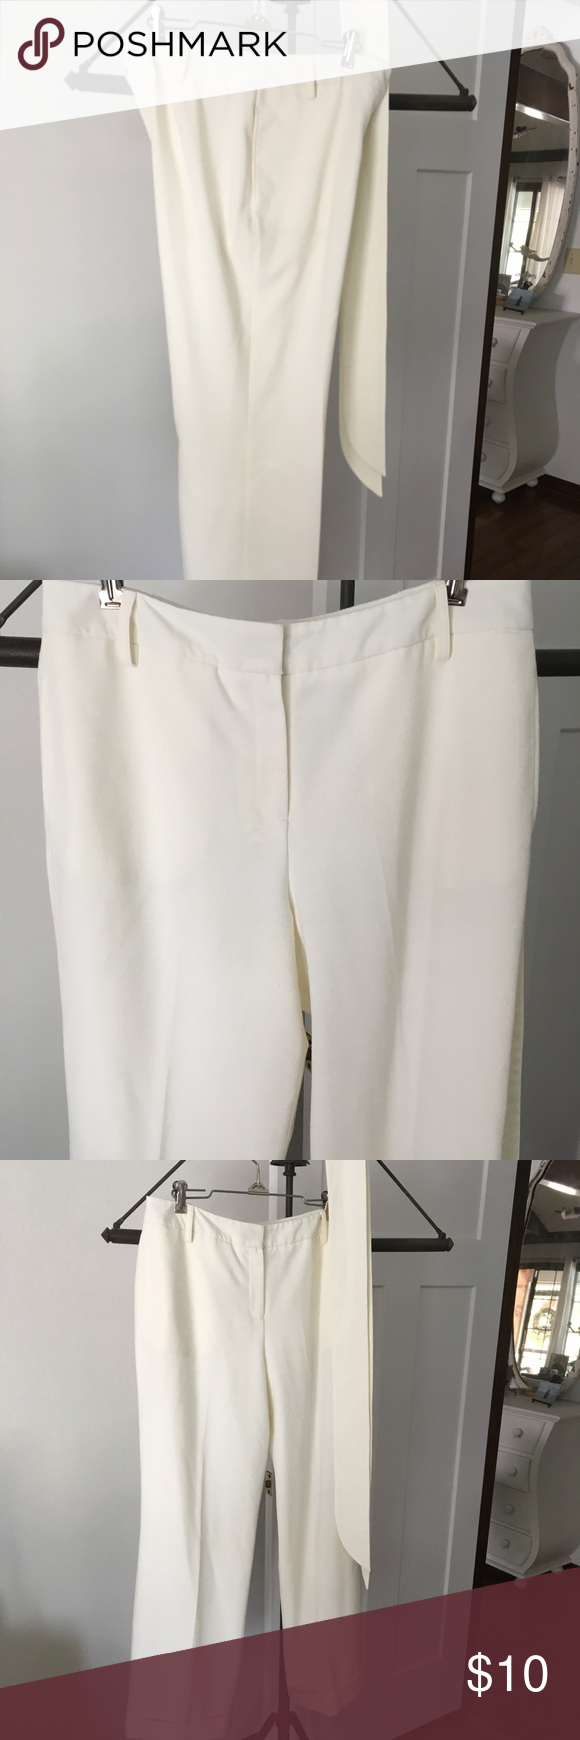 Larry Levine winter white slacks Larry Levine winter white slacks Lined Sash Pockets Very pretty! Excellent condition Size 12p Larry Levine Pants Trousers #whiteslacks